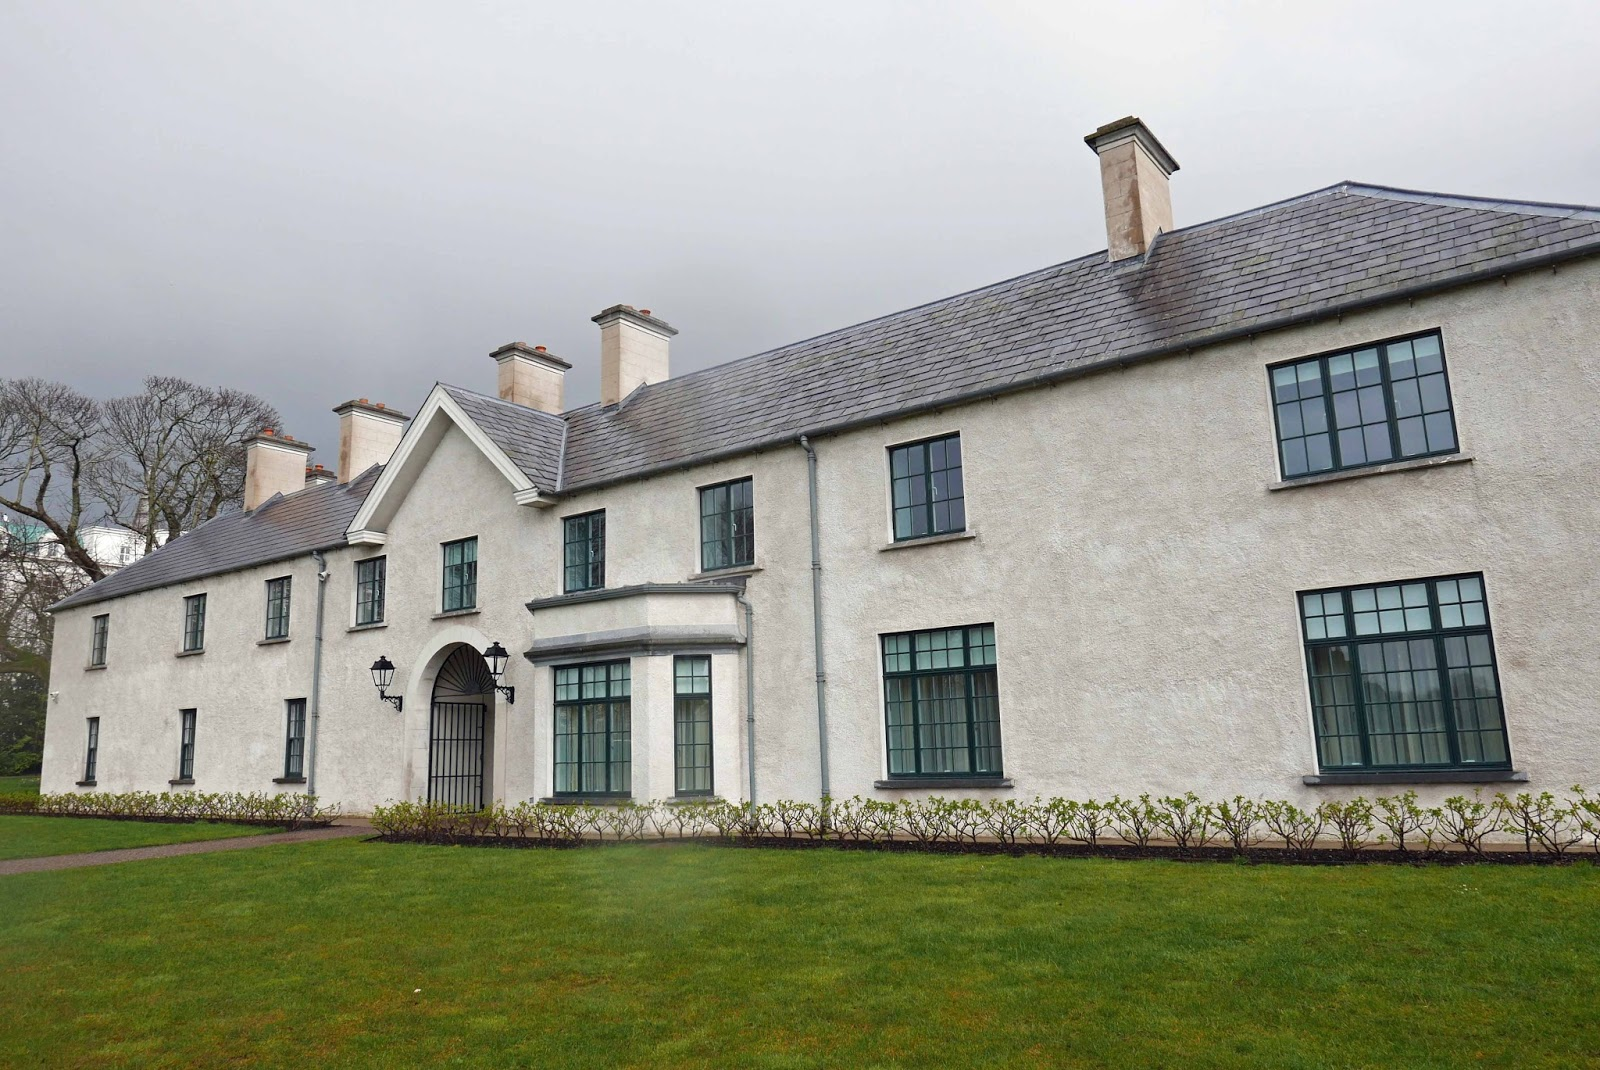 Tours At Killarney House Are Of A Much More Recent Vintage, Much Shorter  Too As The House, Renovated In Recent Years And Opened To The Public Last  July, ...